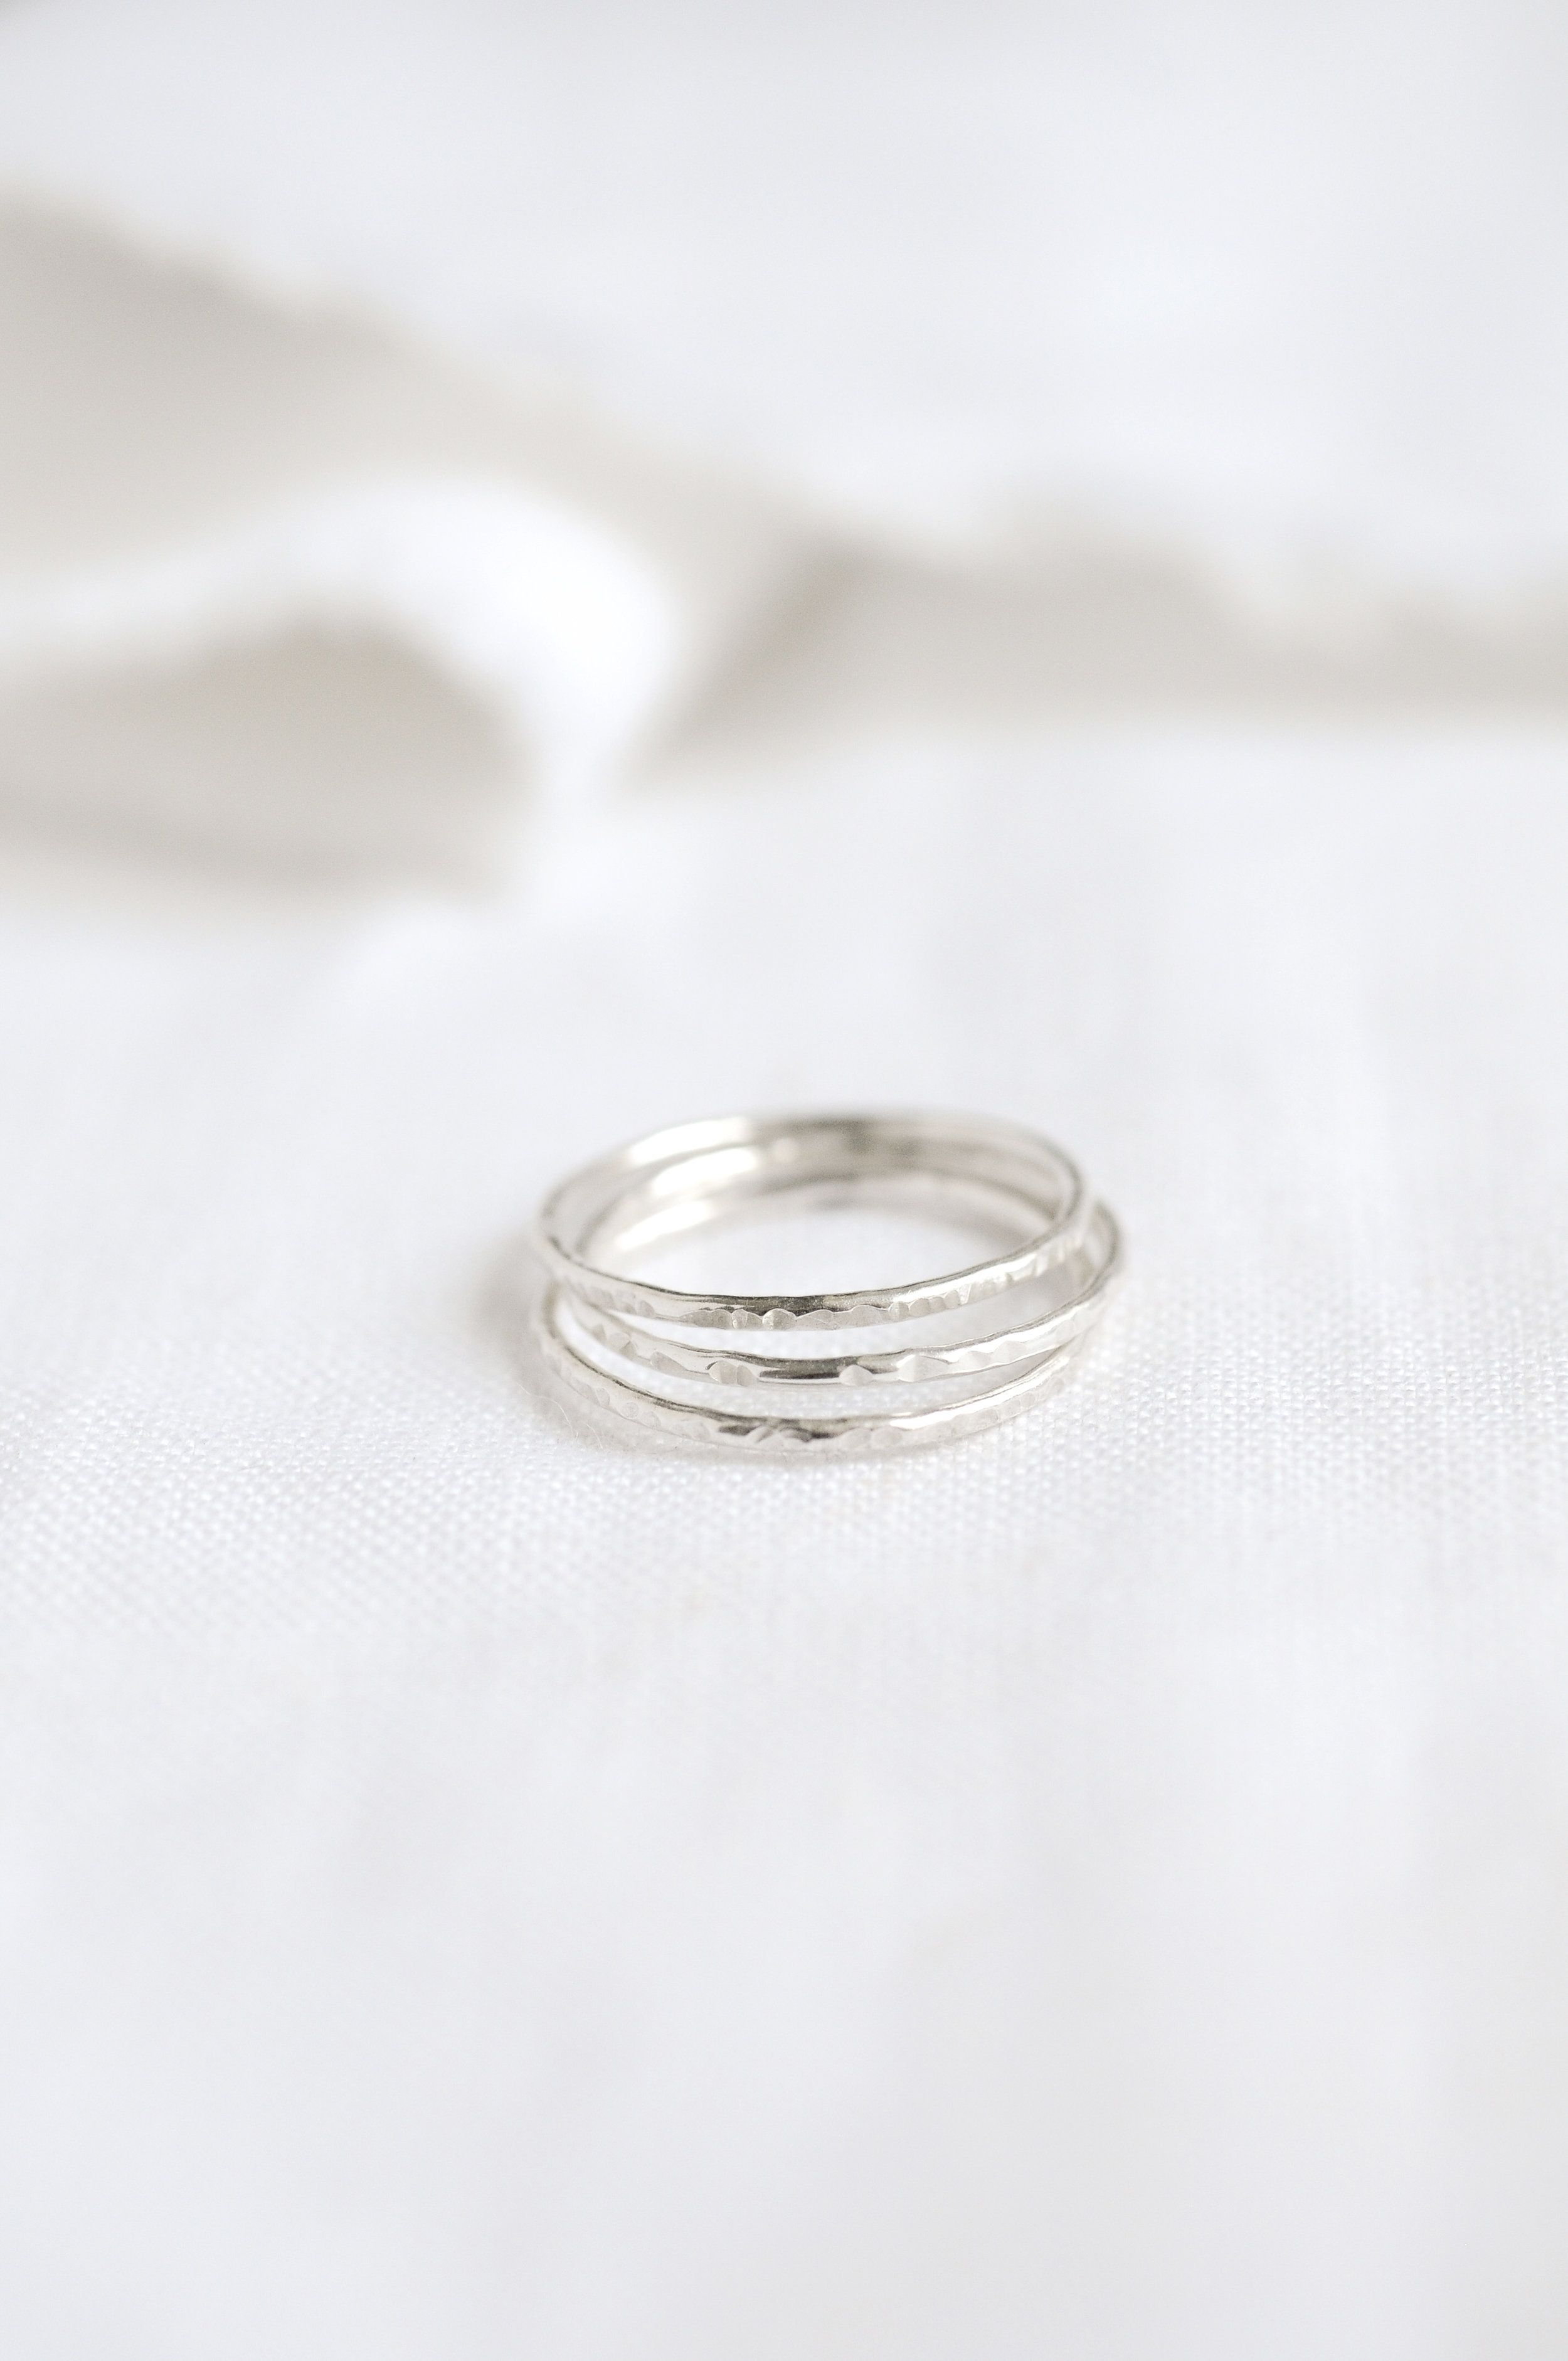 Hammered Stacking Ring Rings Stacking Rings Silver Rings